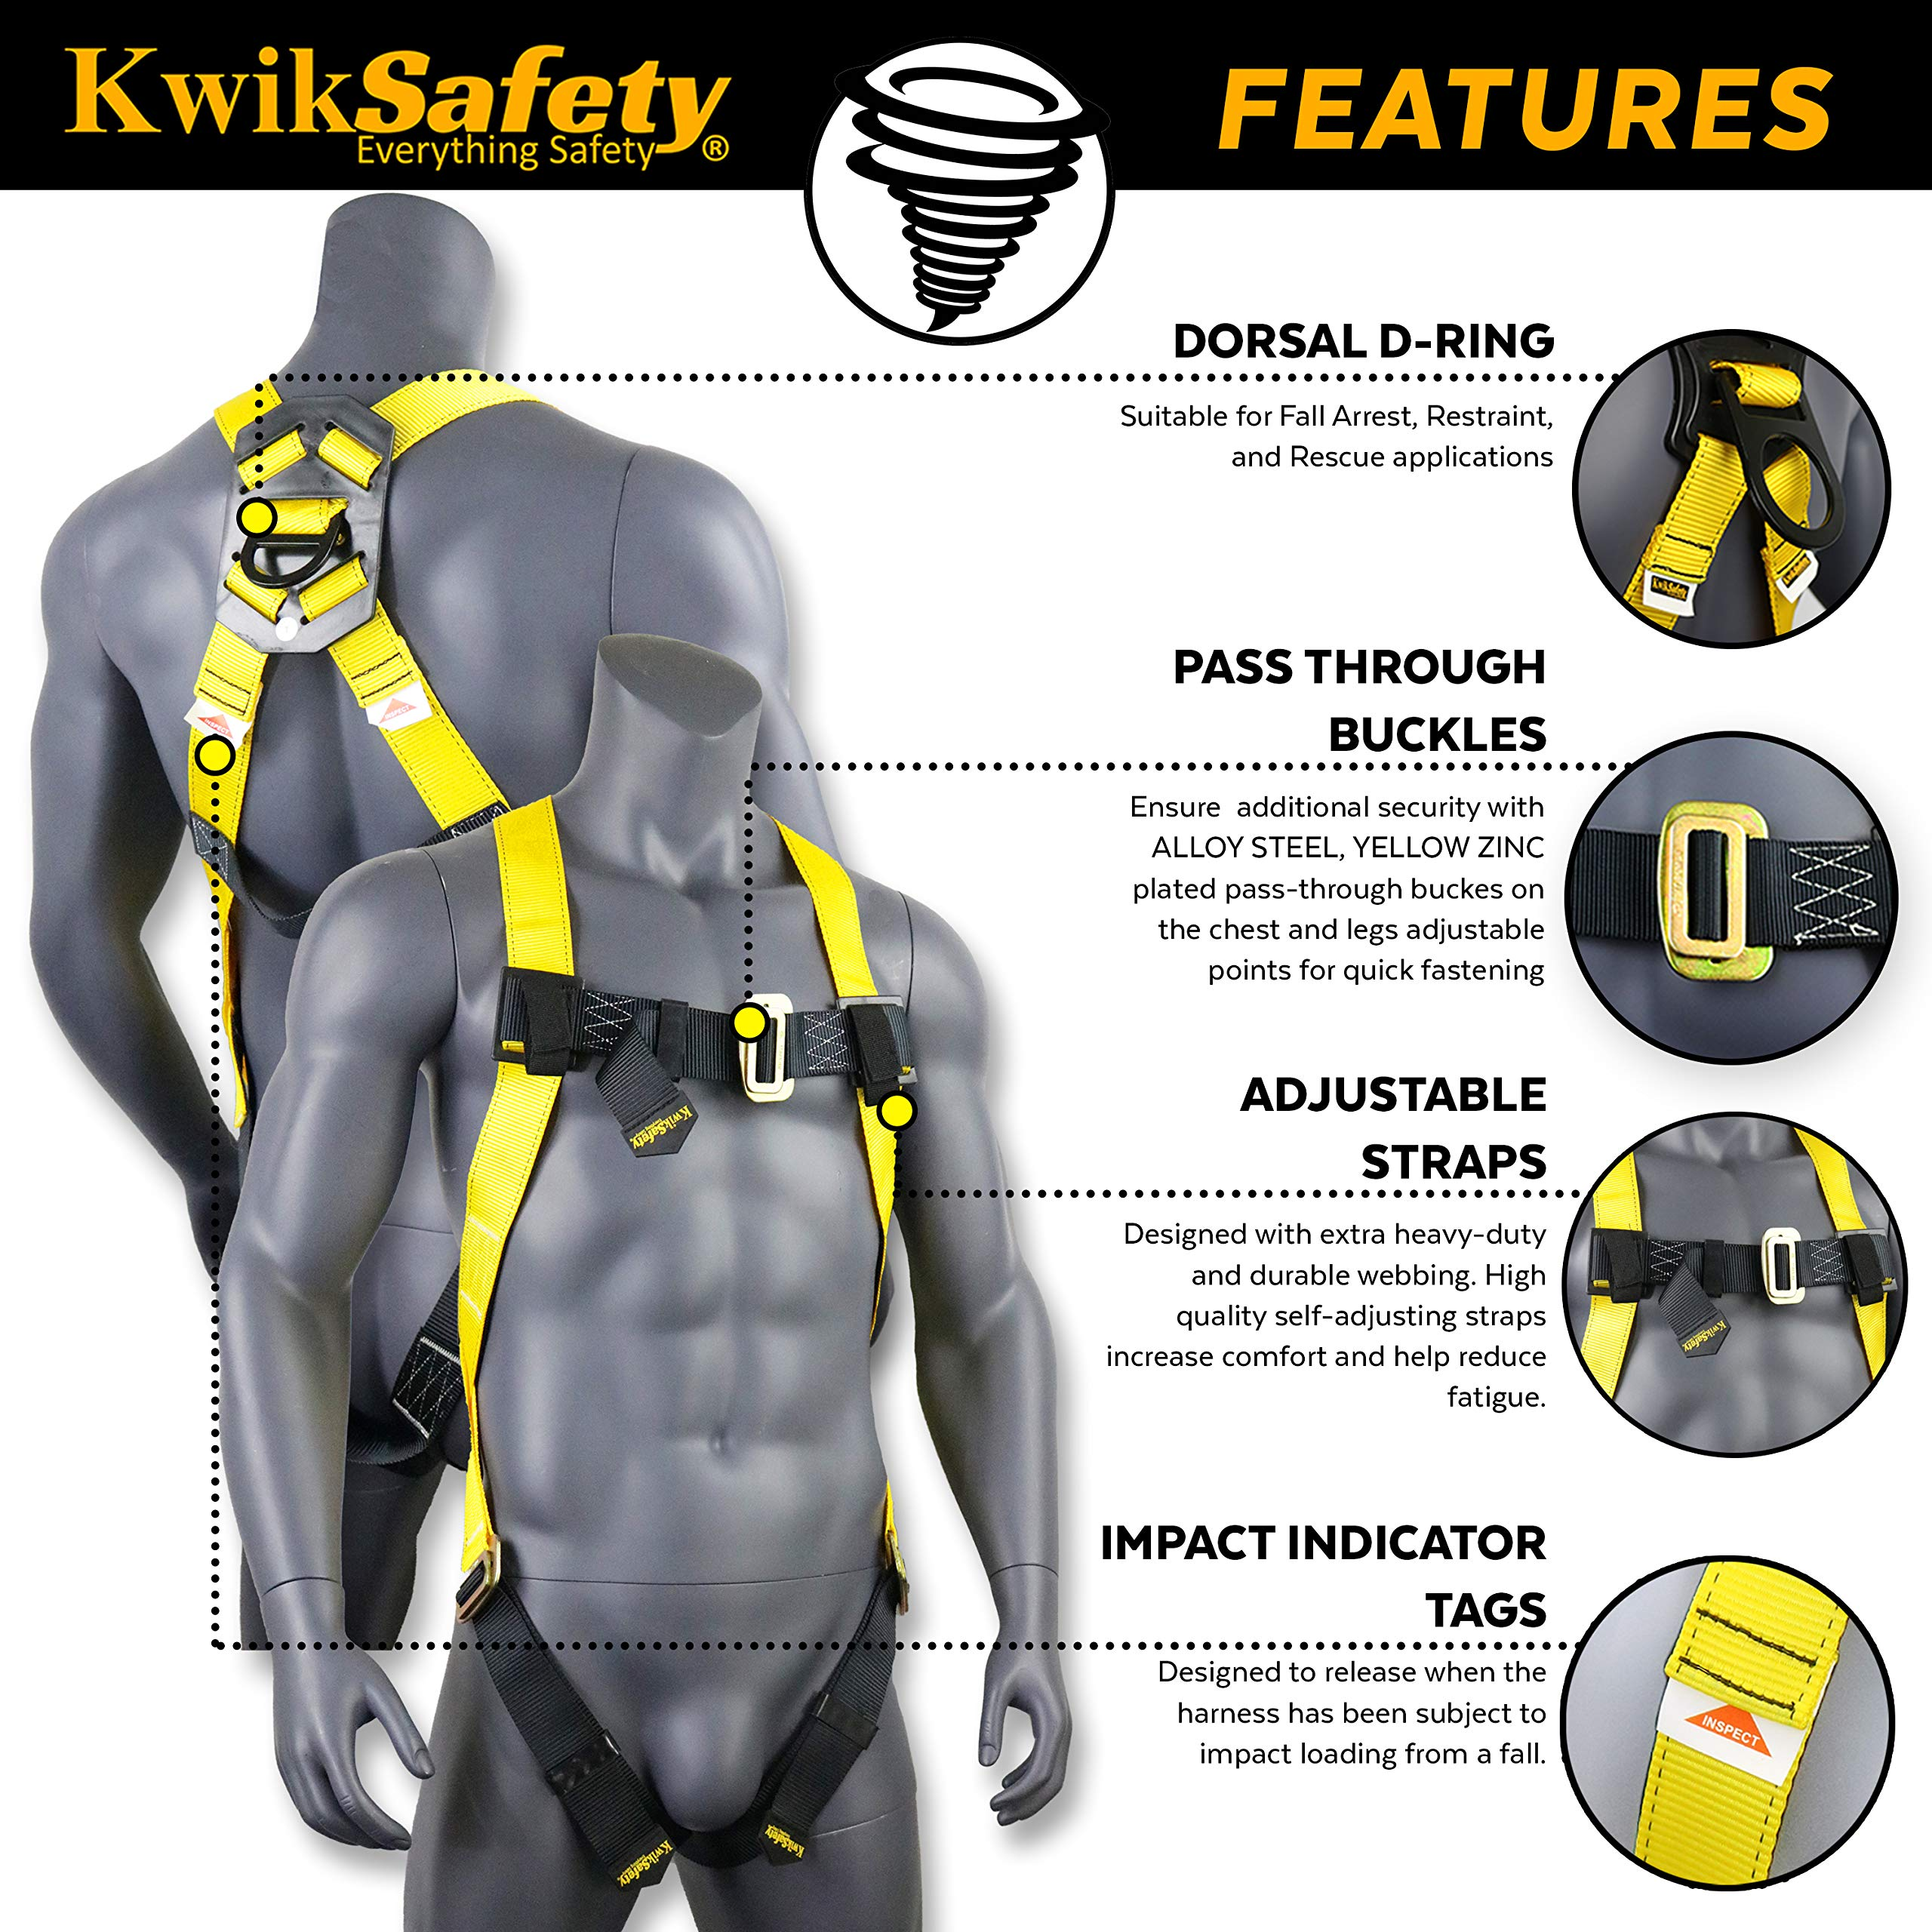 KwikSafety (Charlotte, NC) 4 PACK TORNADO 1D Fall Protection Full Body Safety Harness | OSHA ANSI Industrial Roofing Personal Protection Equipment | Construction Carpenter Scaffolding Contractor by KwikSafety (Image #4)